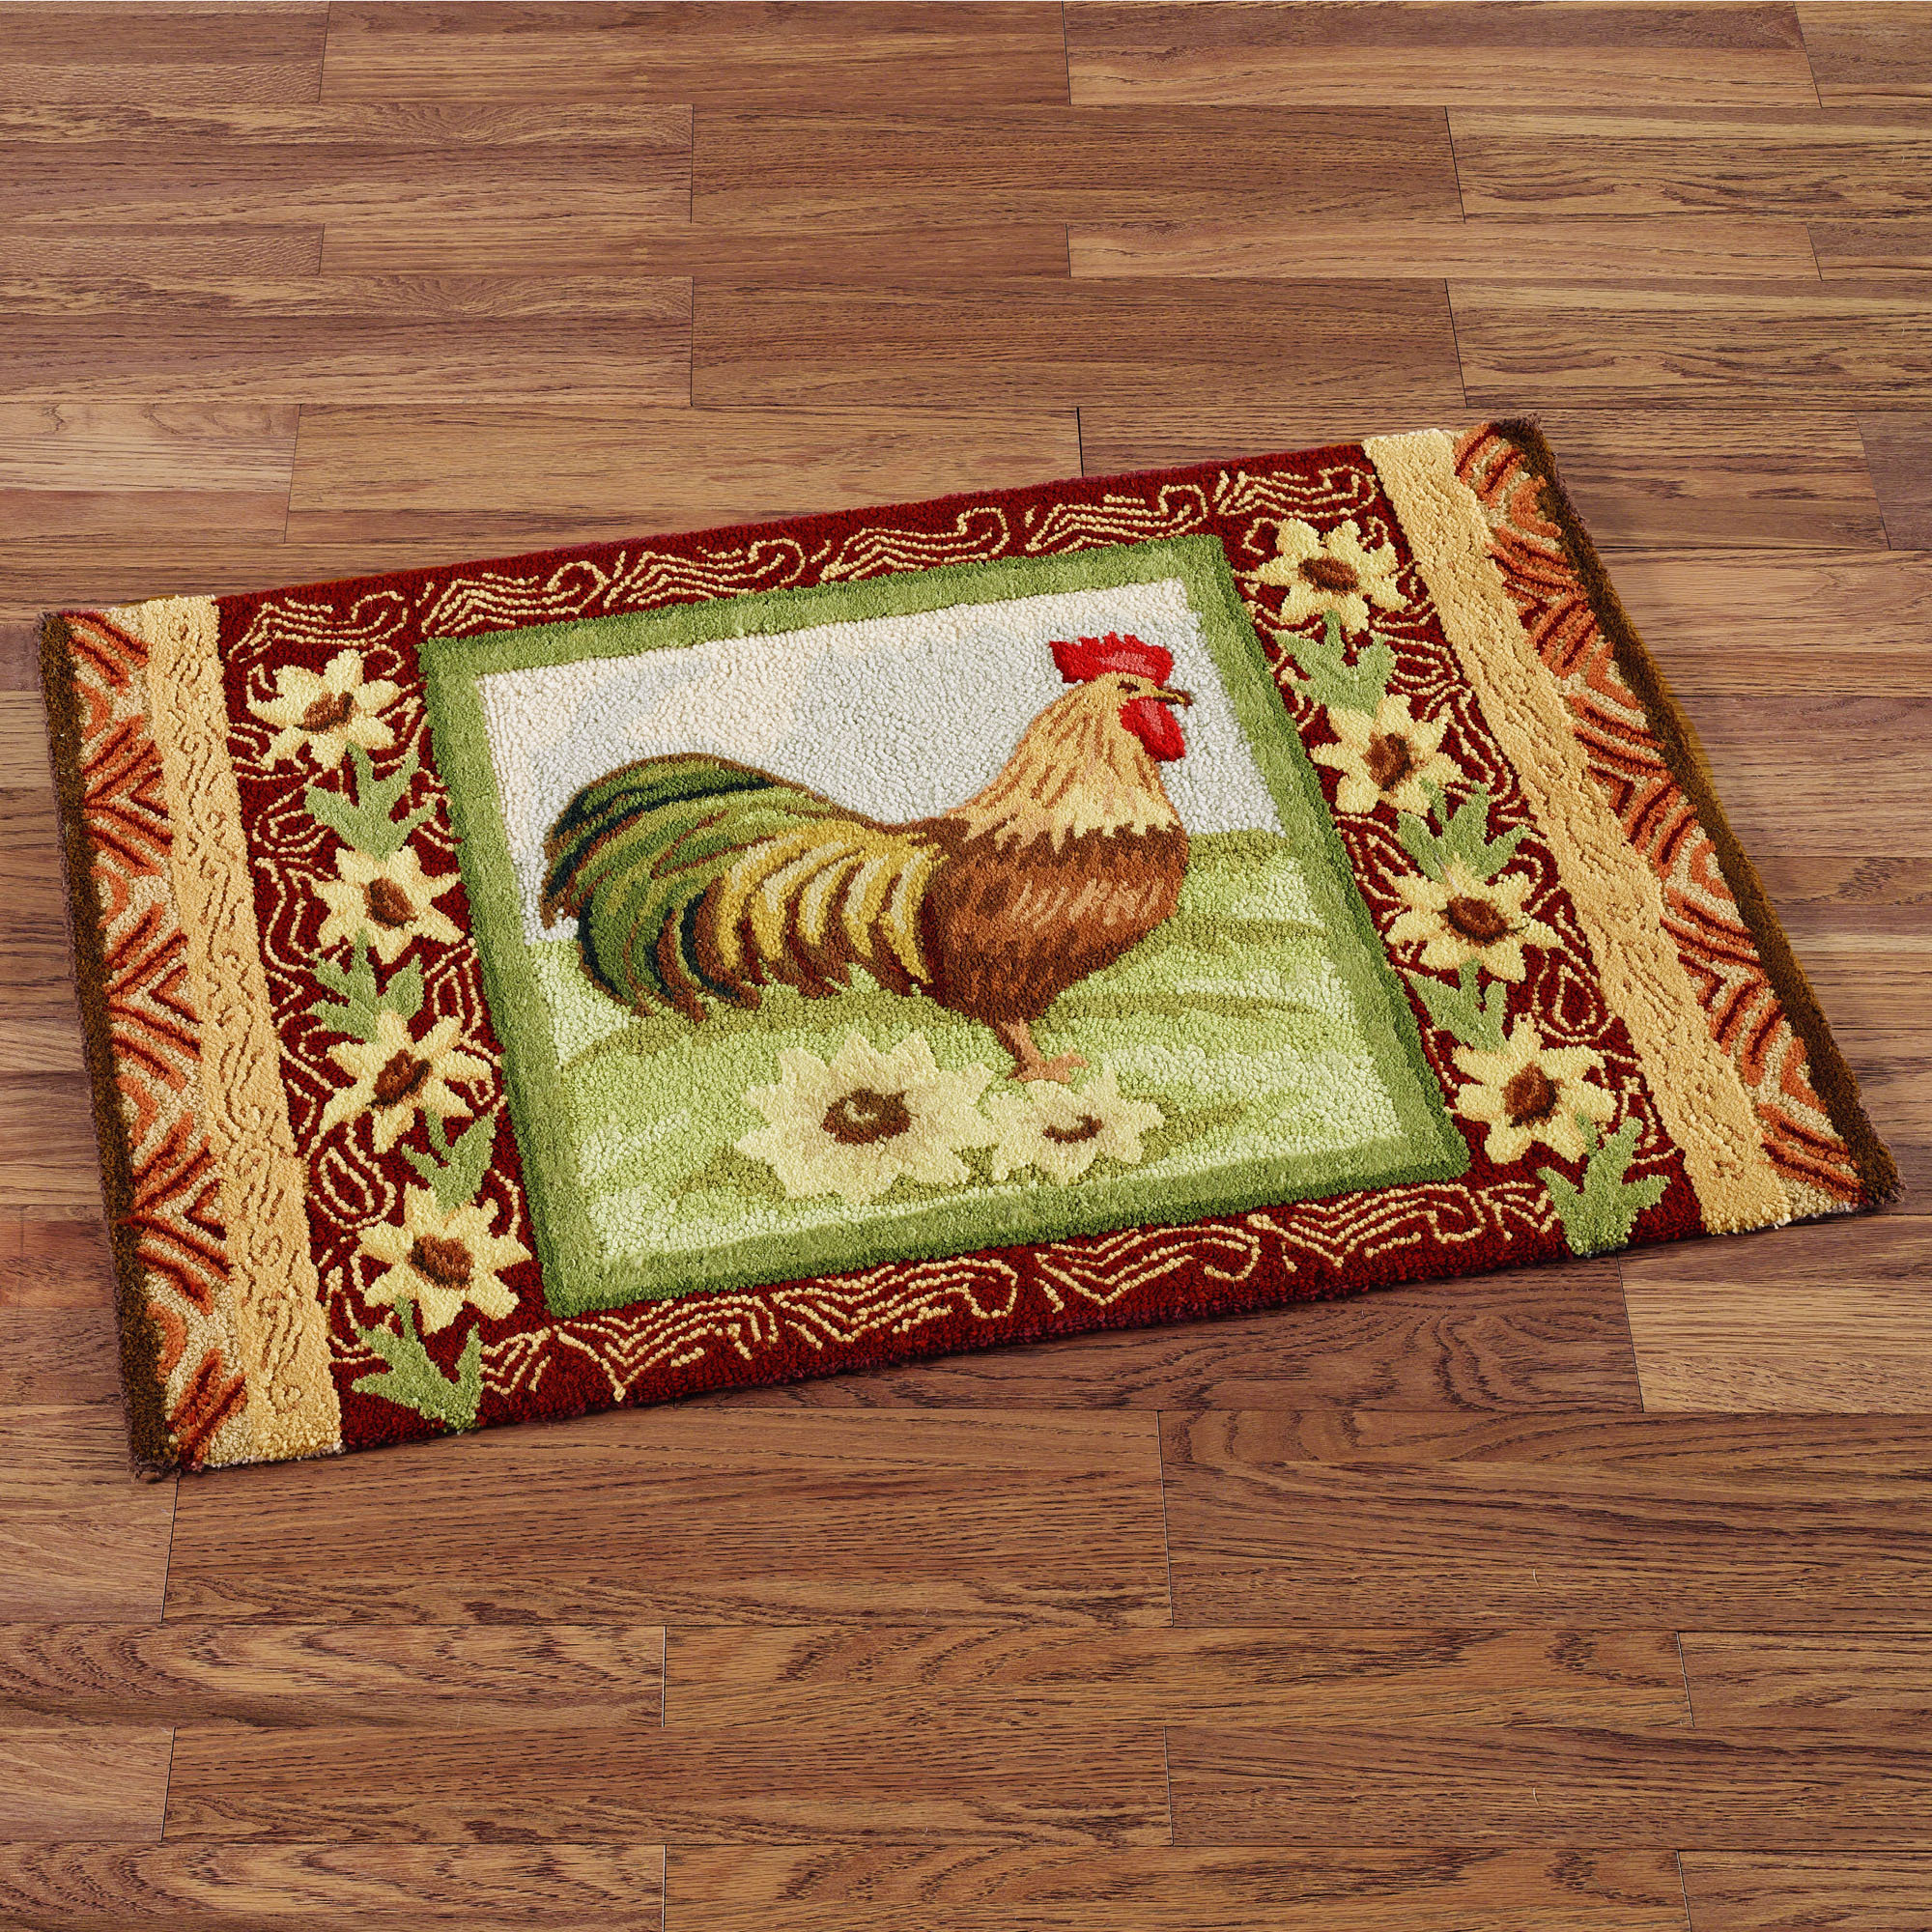 Kitchen Rugs For Wood Floors Kitchen Rugs Brown Color Kitchen Rugs Image 2 Of 10 17 Best